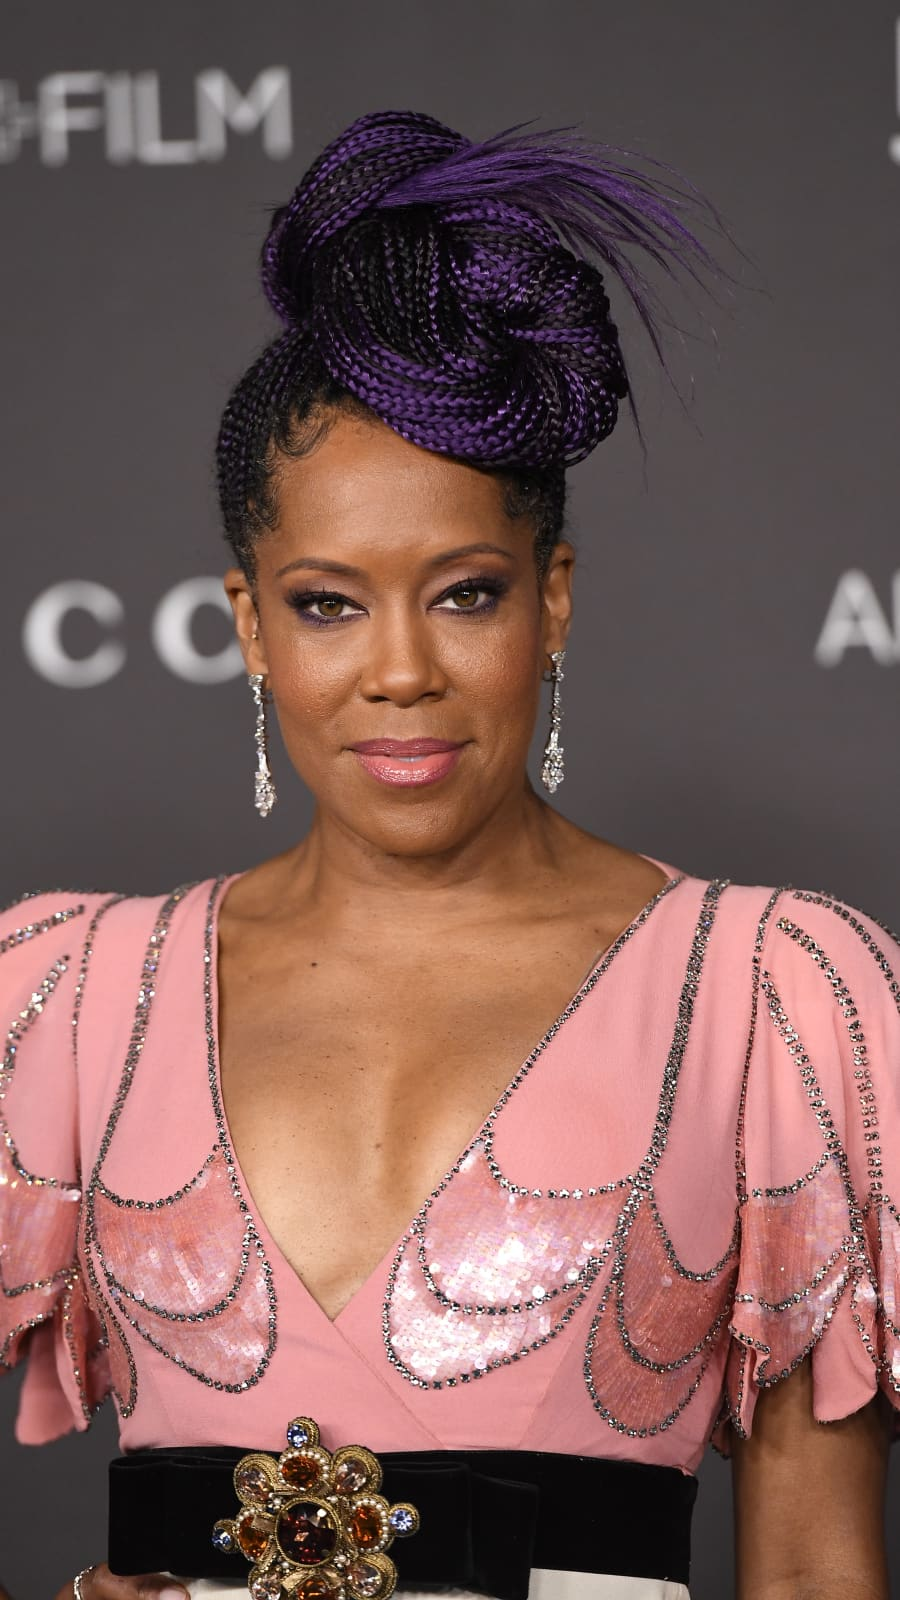 Regina King Makes Debut As A Director With One Night In Miami